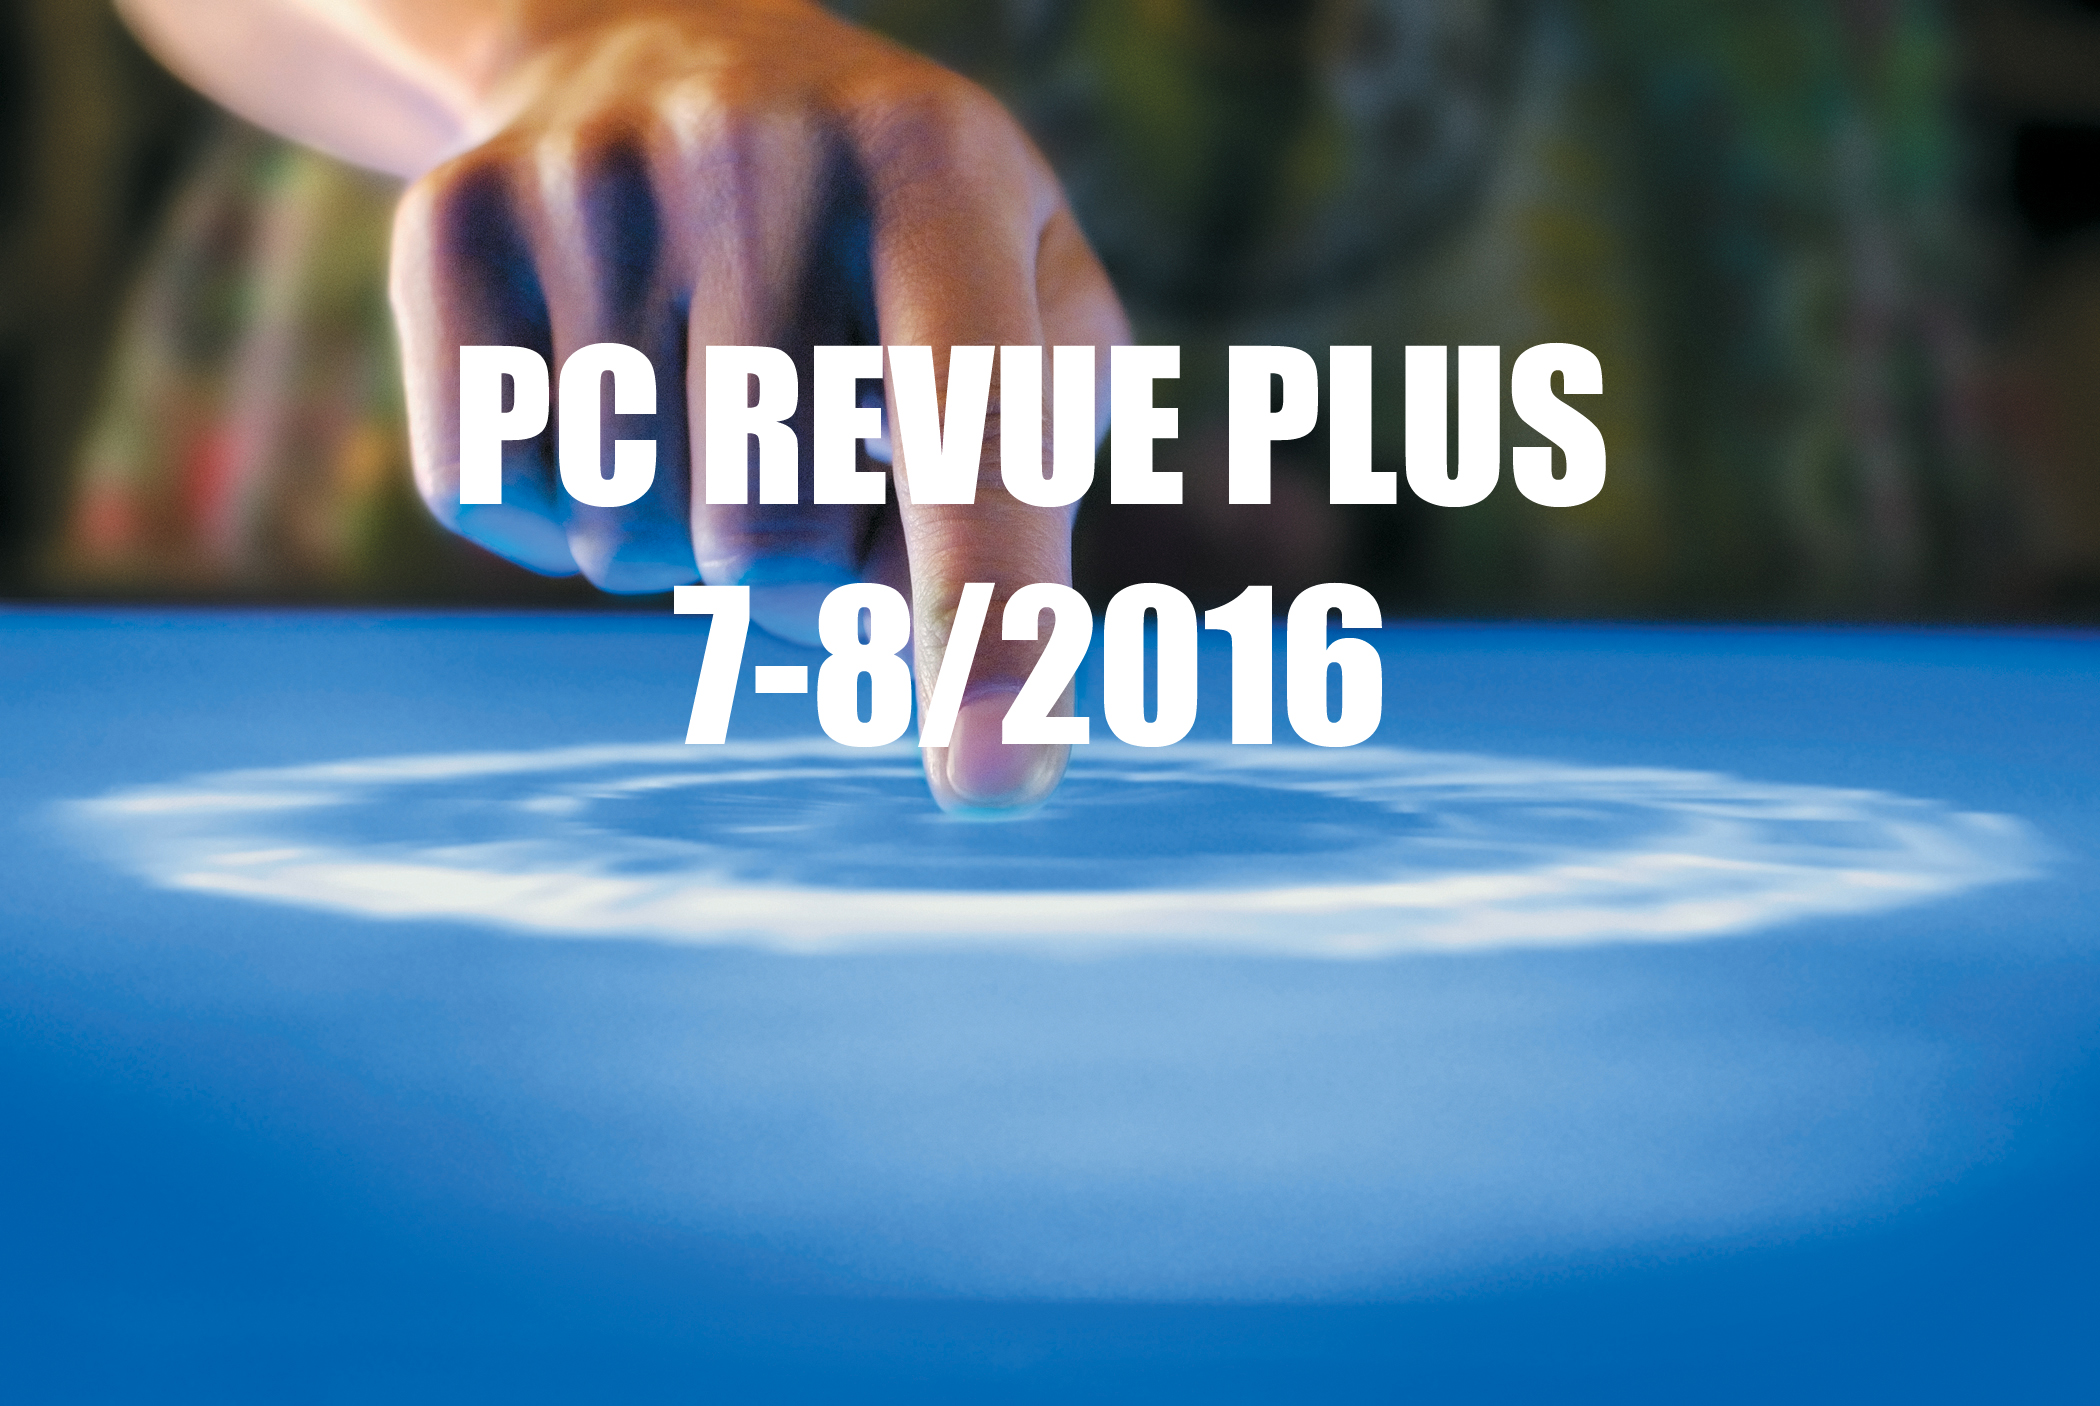 Photo PC REVUE plus 7-8/2016